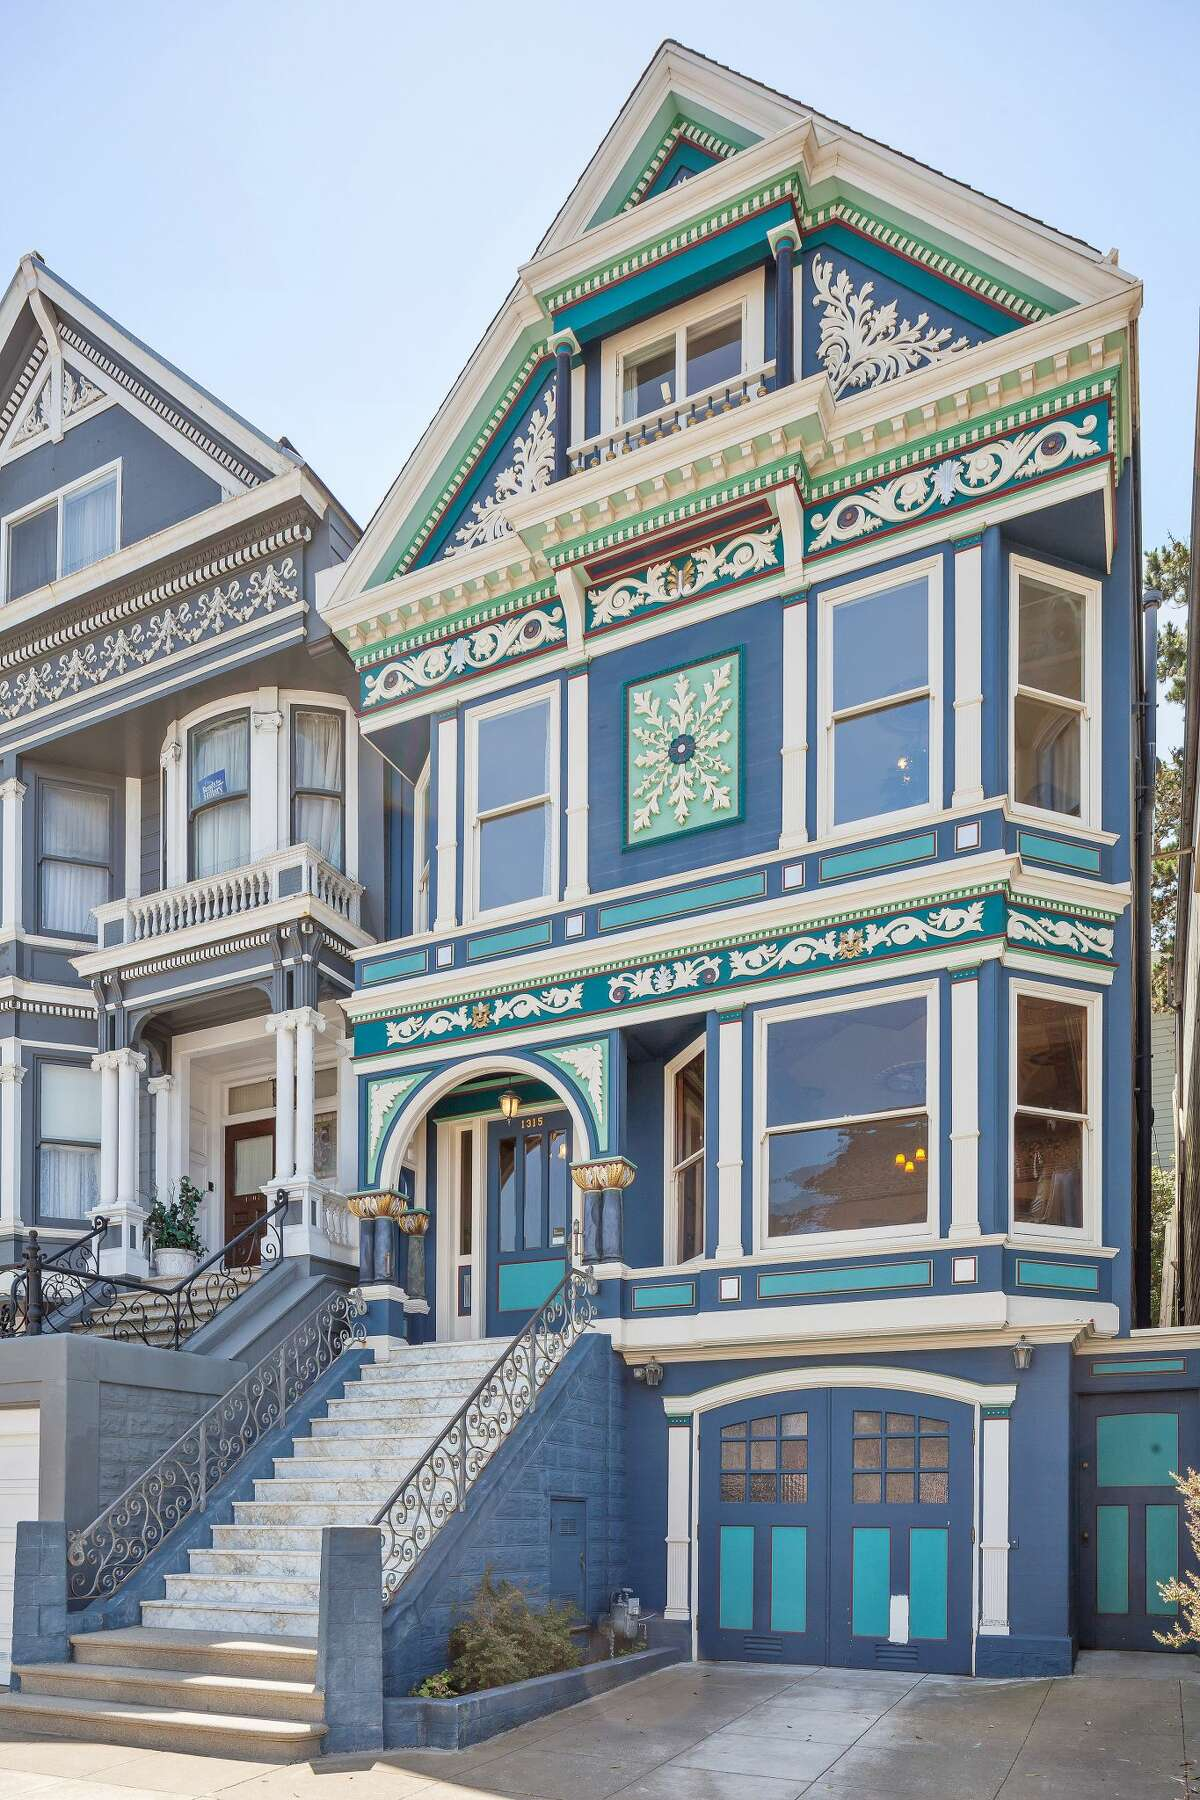 The Four Seasons Victorians on Waller Street were built in the 1890s by shipwright John Whelan. The Whelan family lived in the